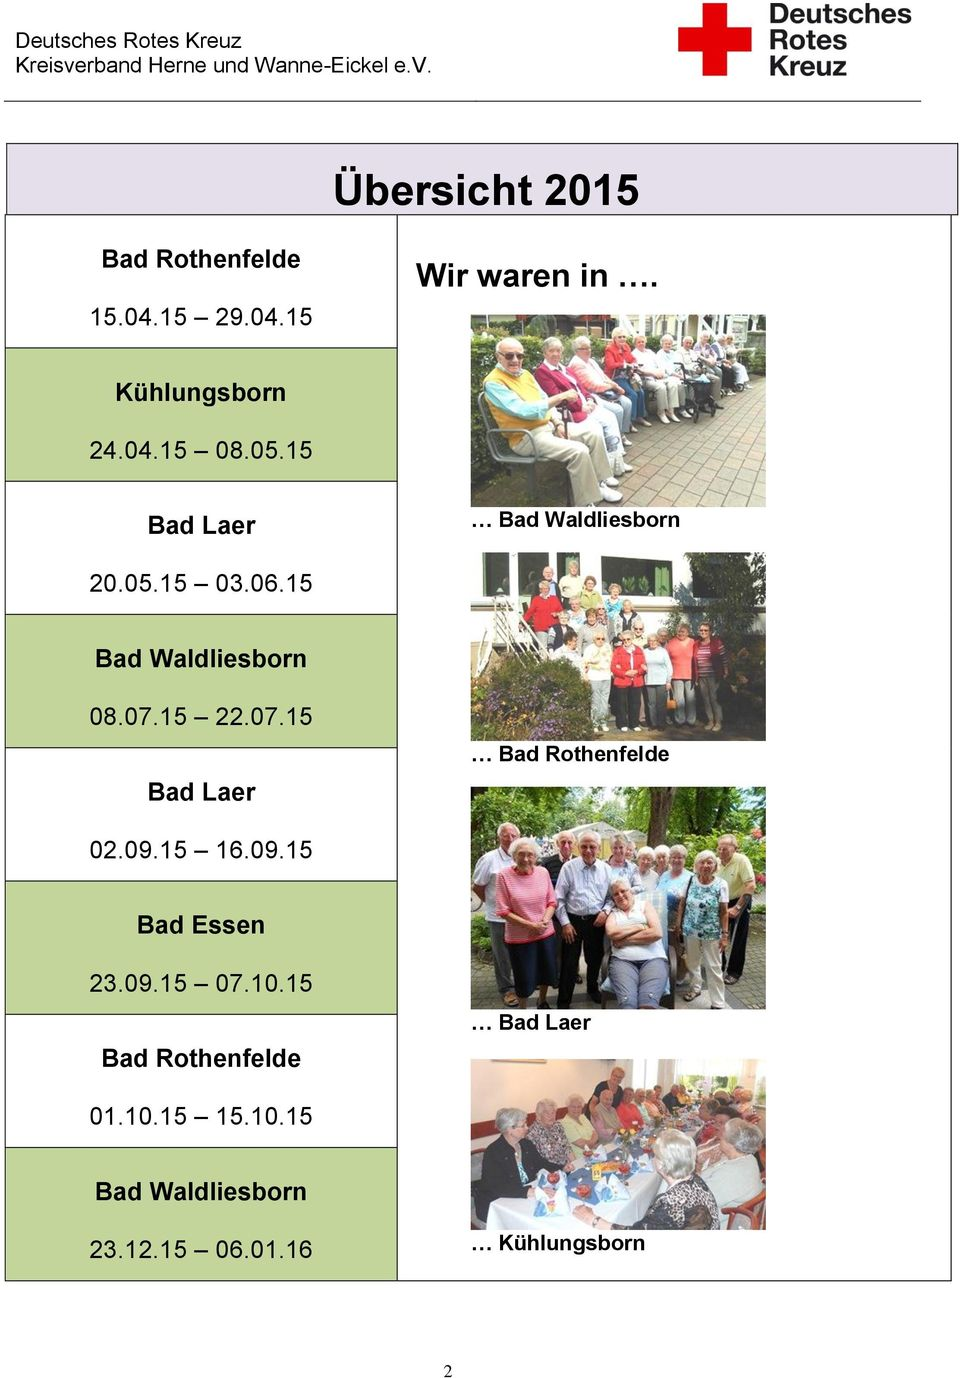 15 22.07.15 Bad Laer Bad Rothenfelde 02.09.15 16.09.15 Bad Essen 23.09.15 07.10.